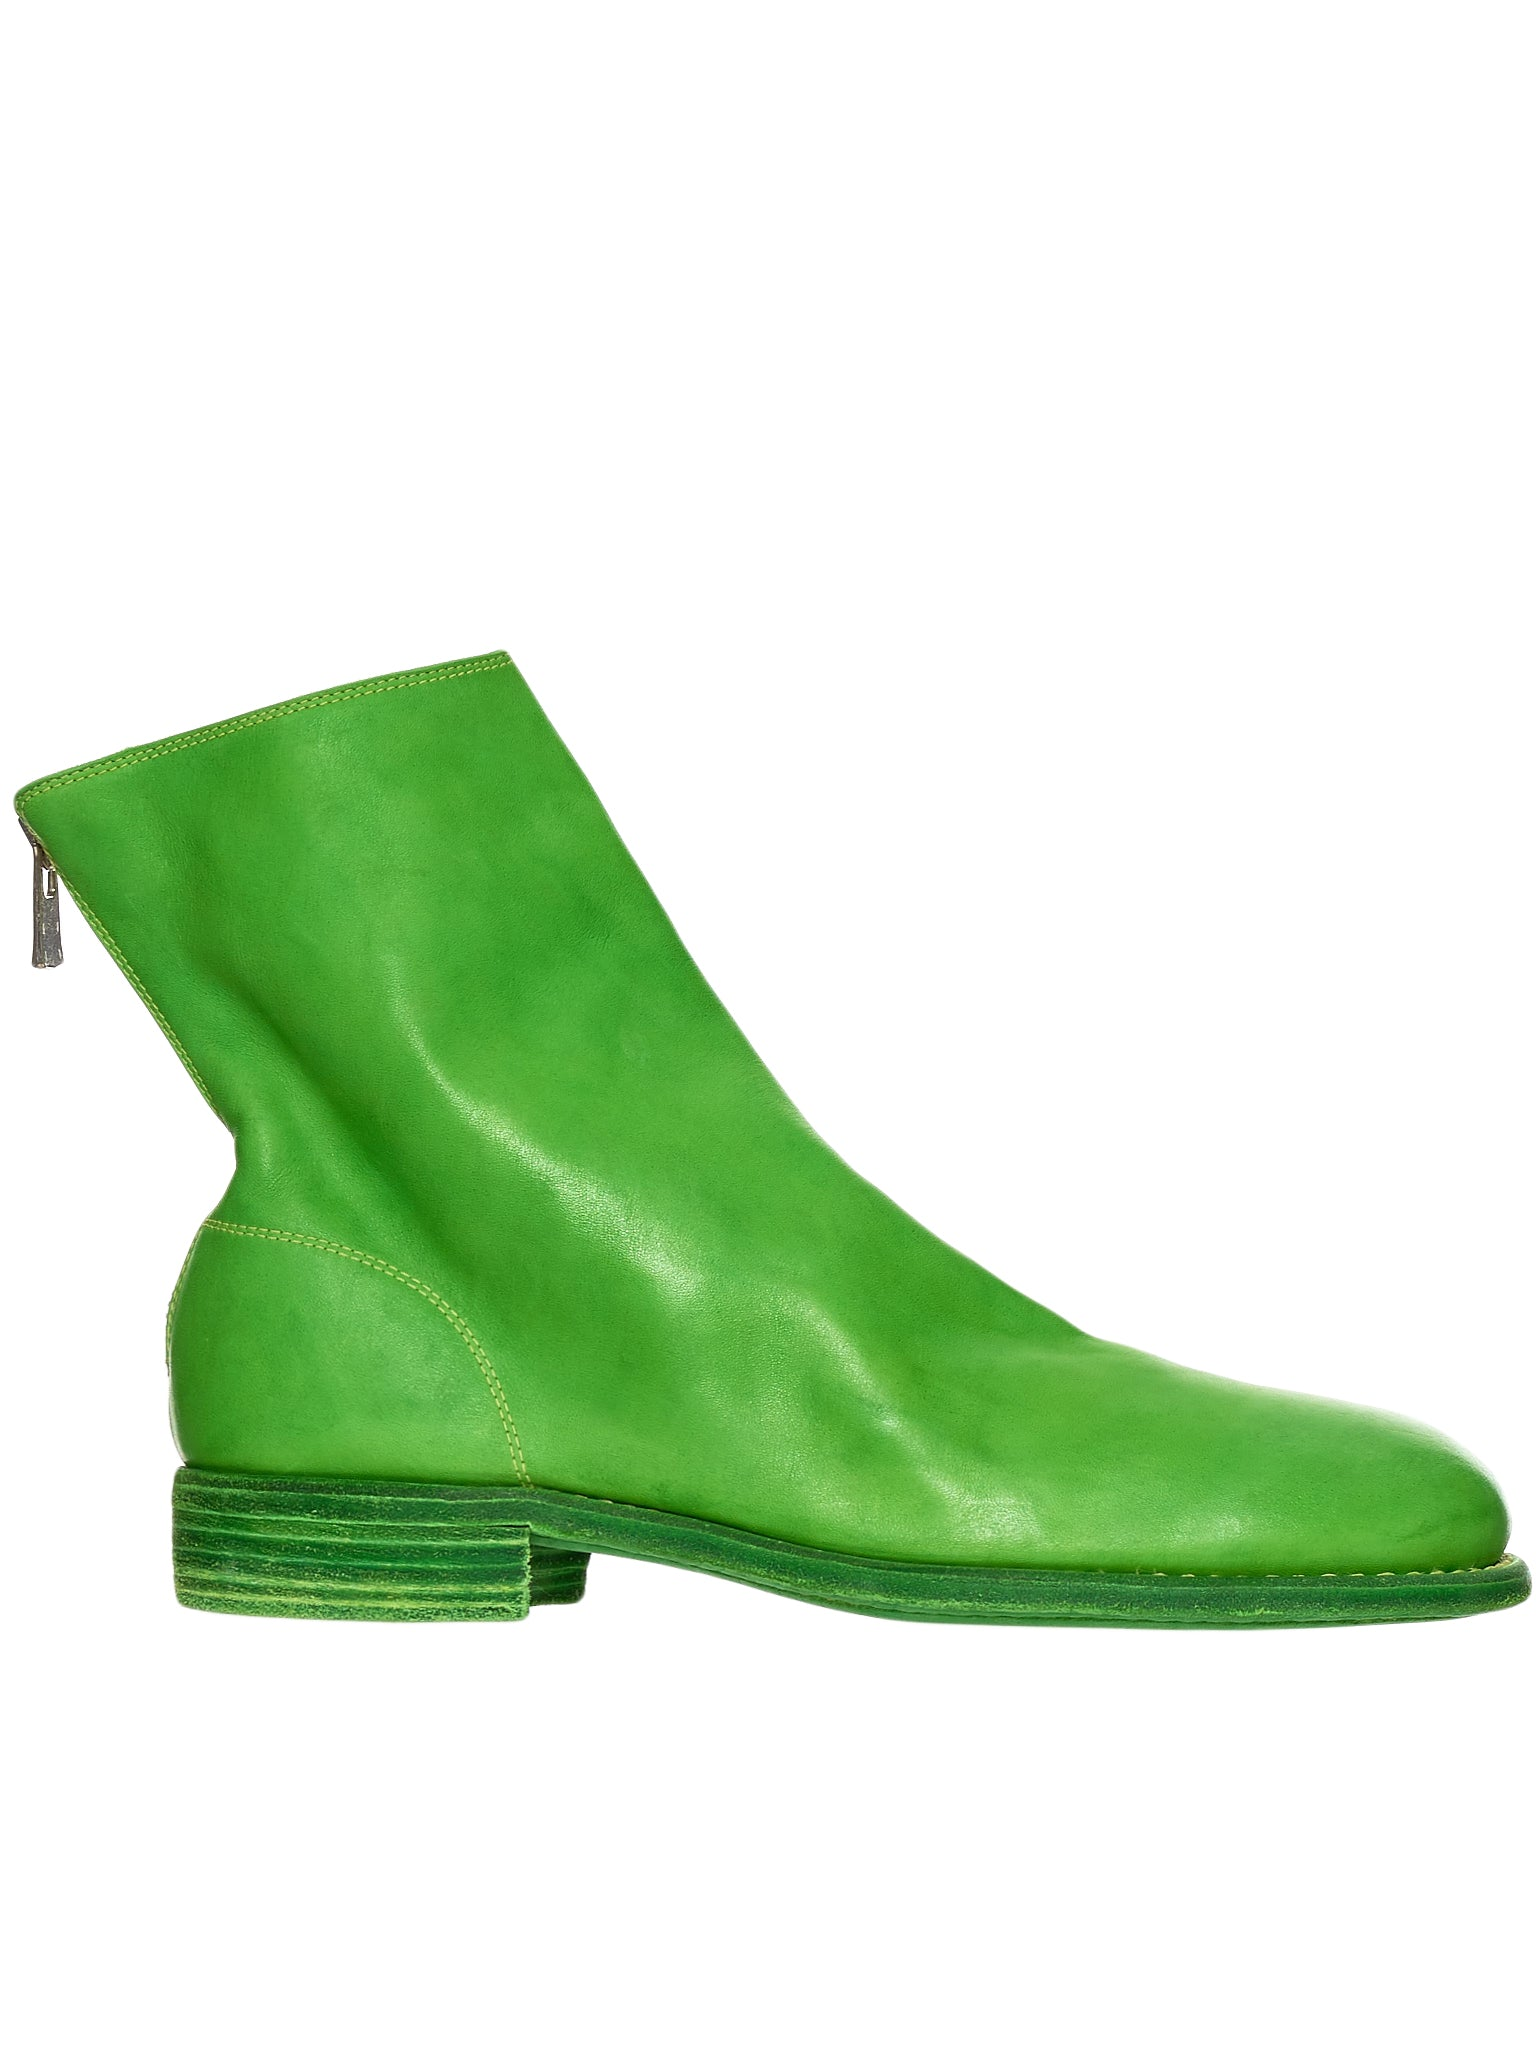 Guidi 986 Green Boot - Hlorenzo Front